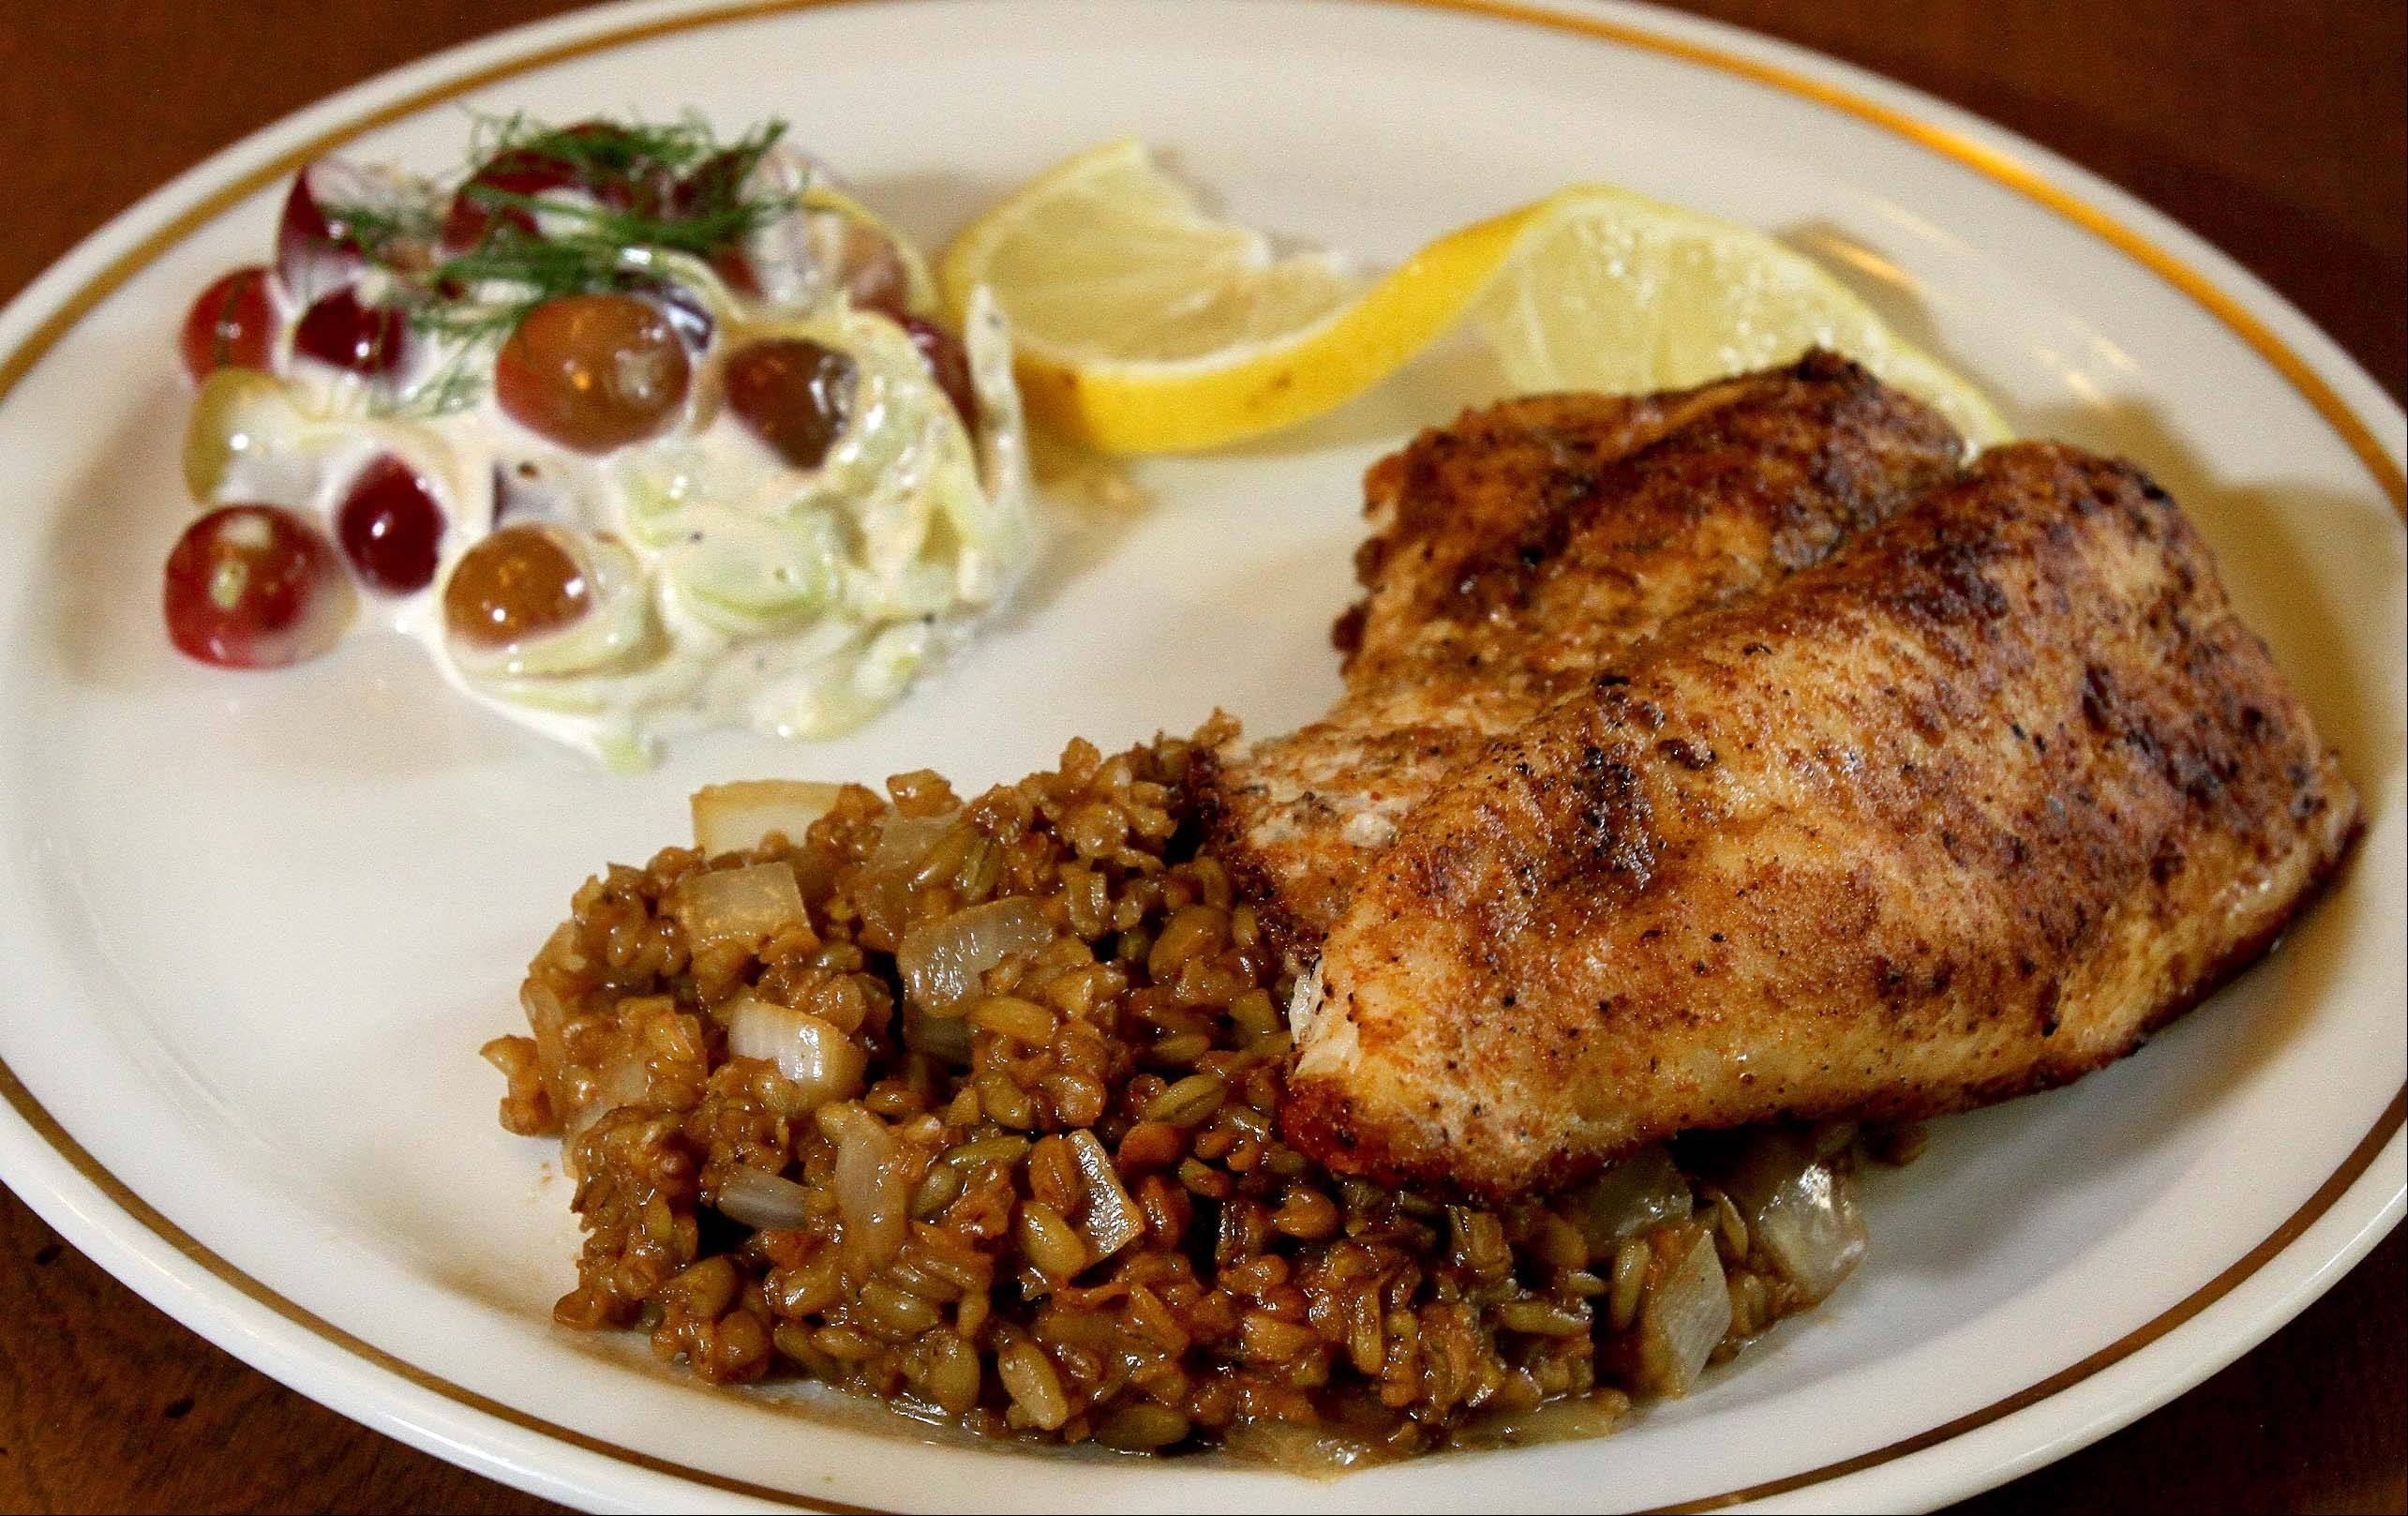 Blackened Catfish With Asian Cajun Dirty Freekeh And A Fennel-Grape Salad